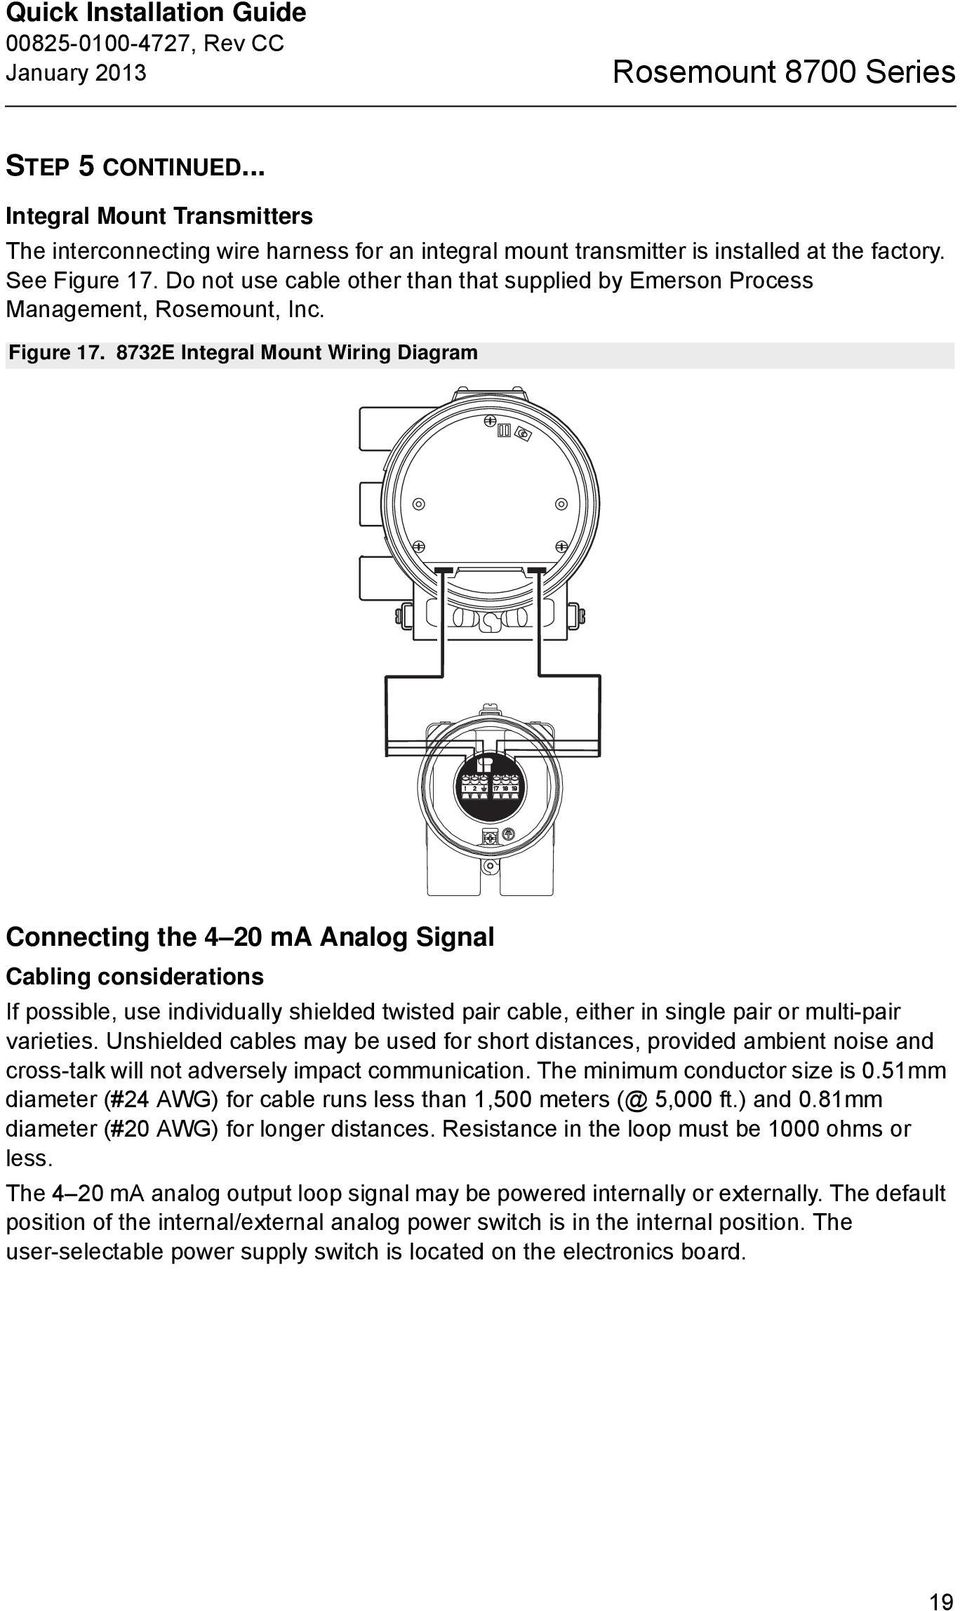 Rosemount 8700 Series Magnetic Flowmeter Sensors Pdf Twisted Pair Wiring Diagram 8732e Integral Mount Connecting The 4 20 Ma Analog Signal Cabling Considerations If Possible